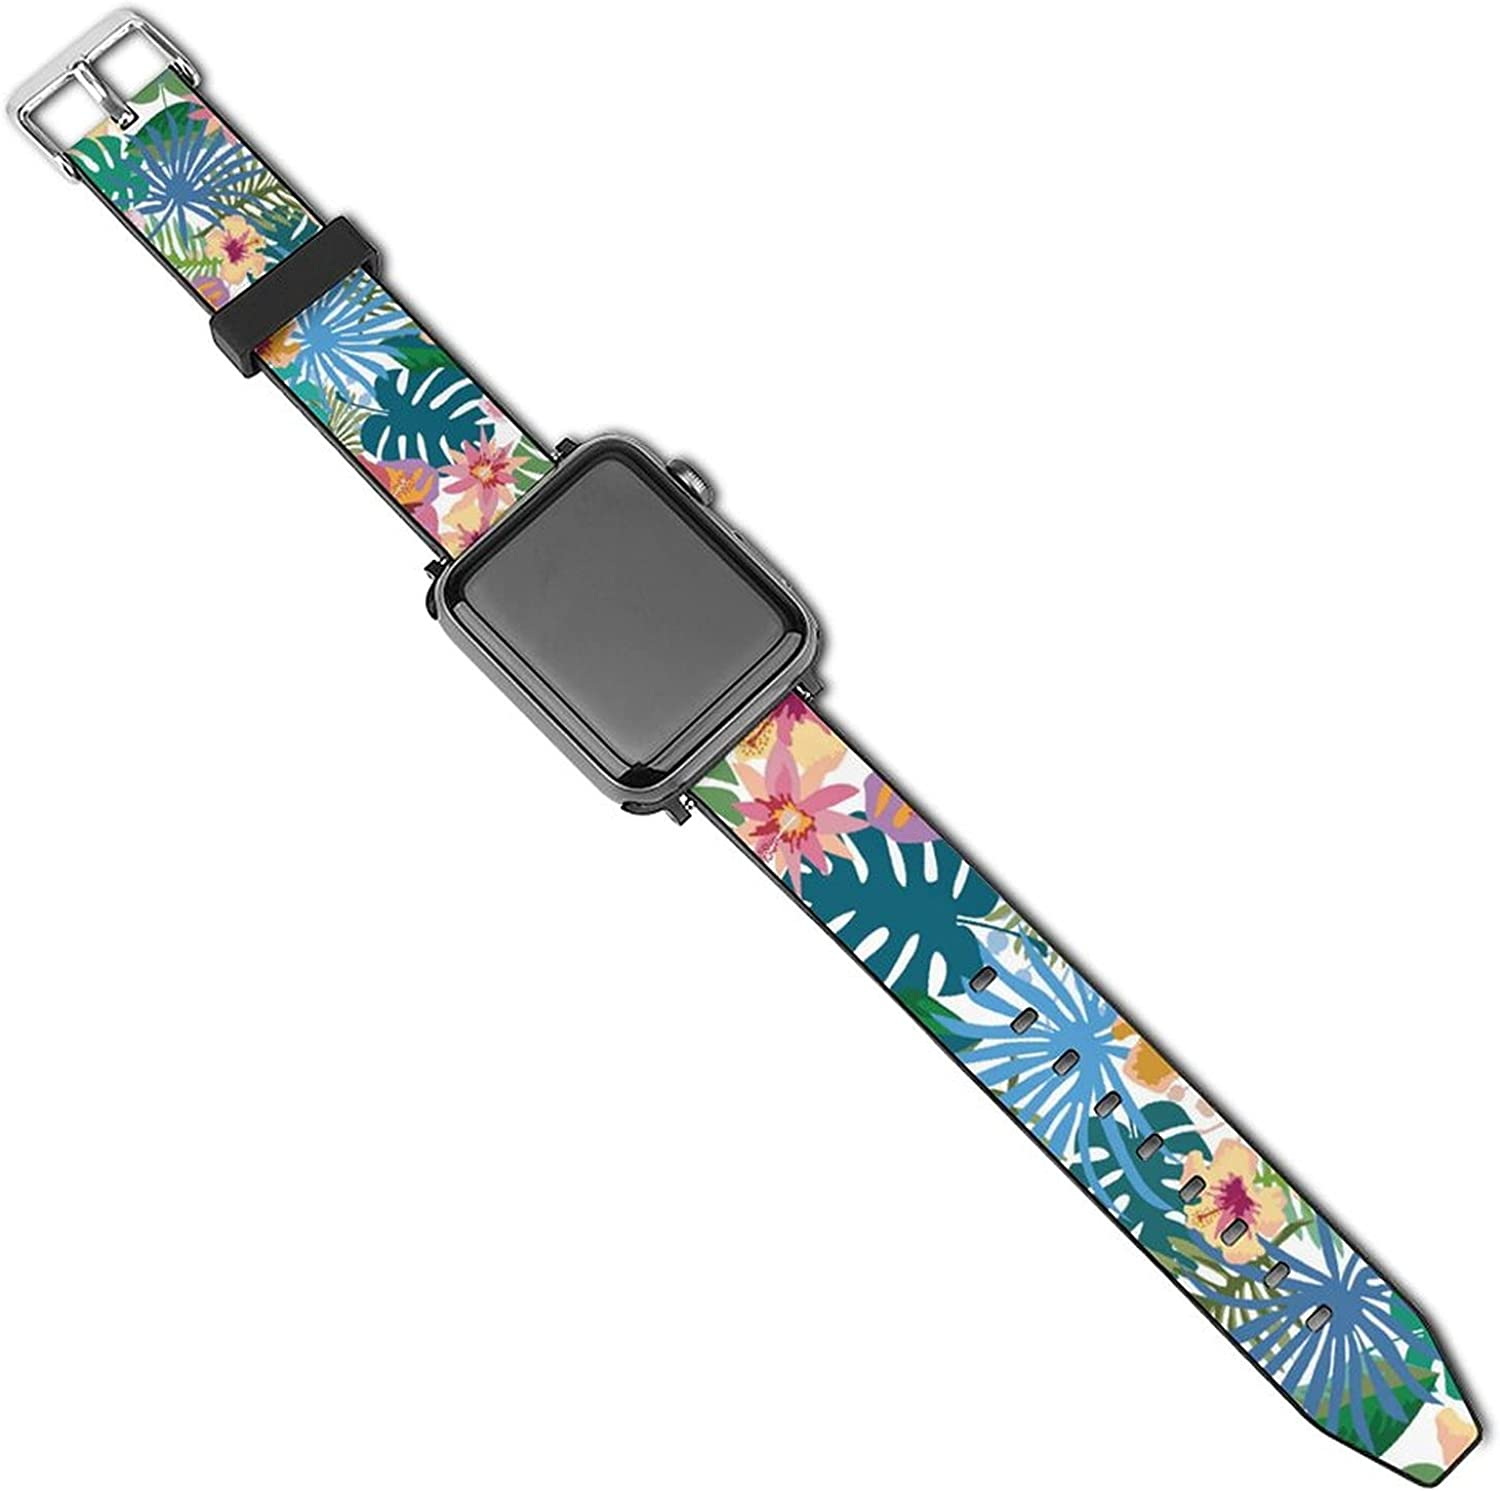 Compatible Watch Bands Max 51% OFF 42mm Or Free shipping / New 38mm PU Sport Wristbands Li Soft